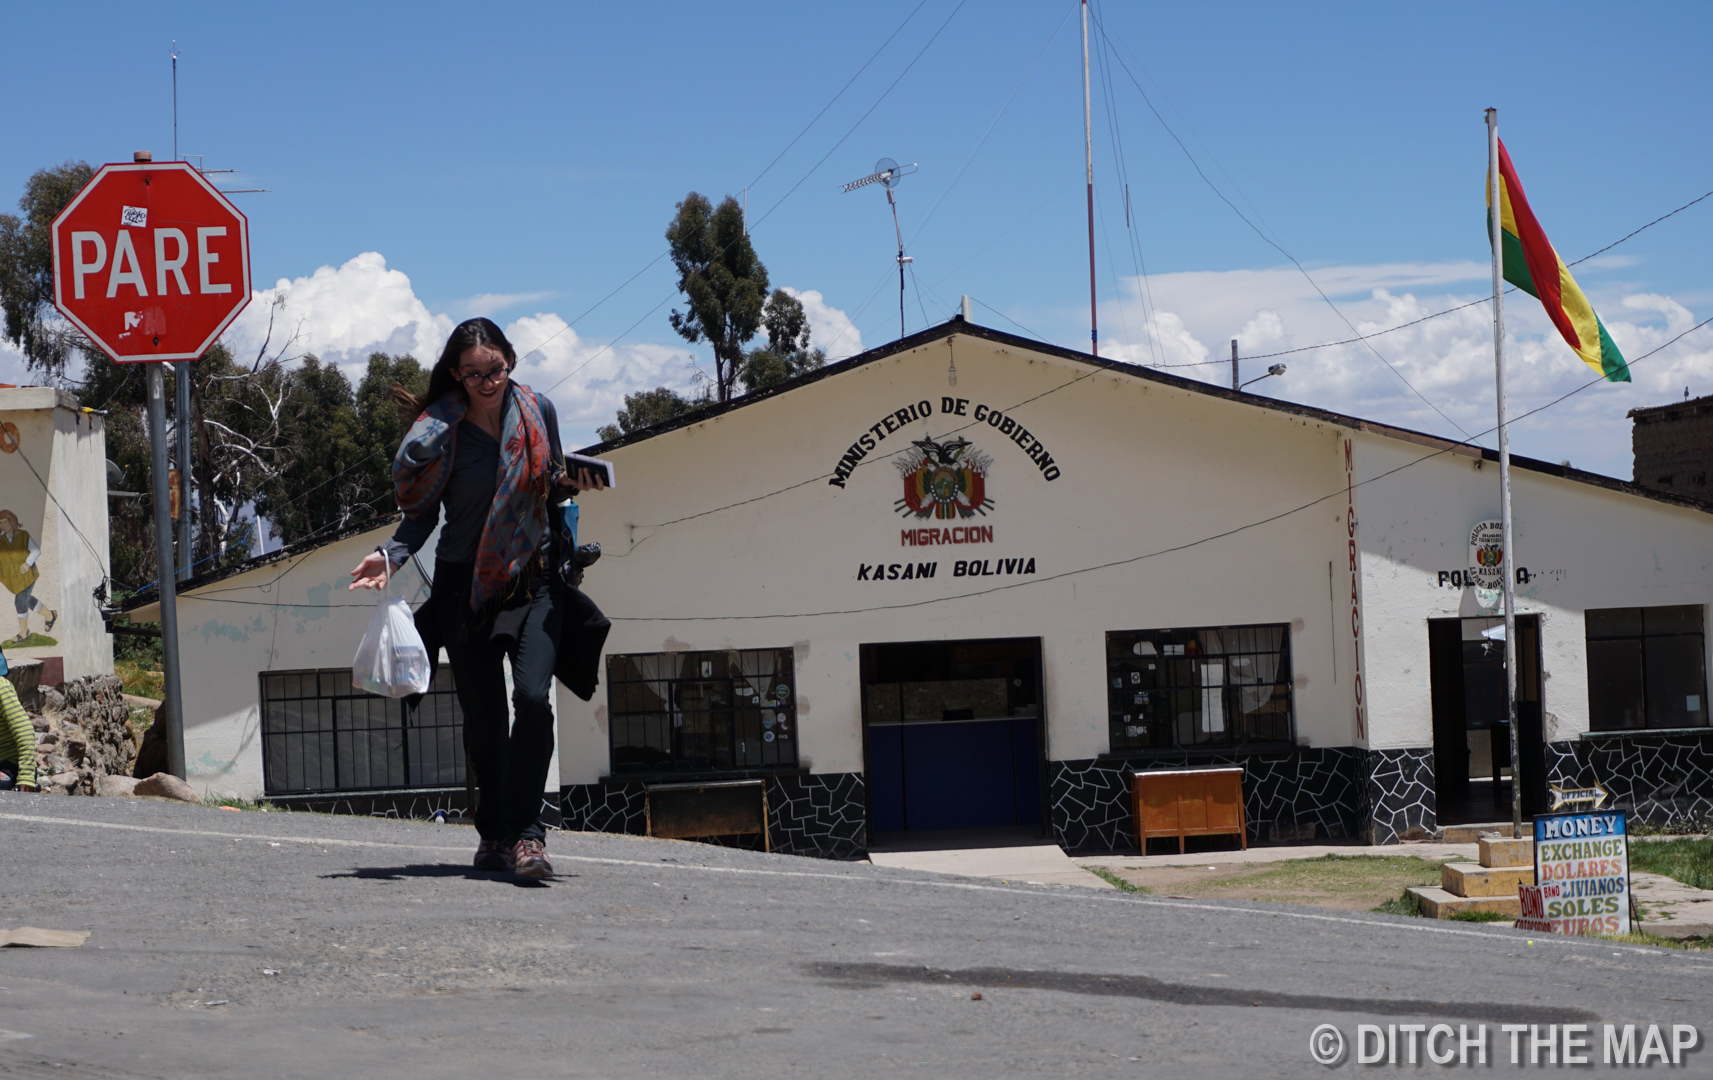 Sylvie making her way back from Bolivian Immigration